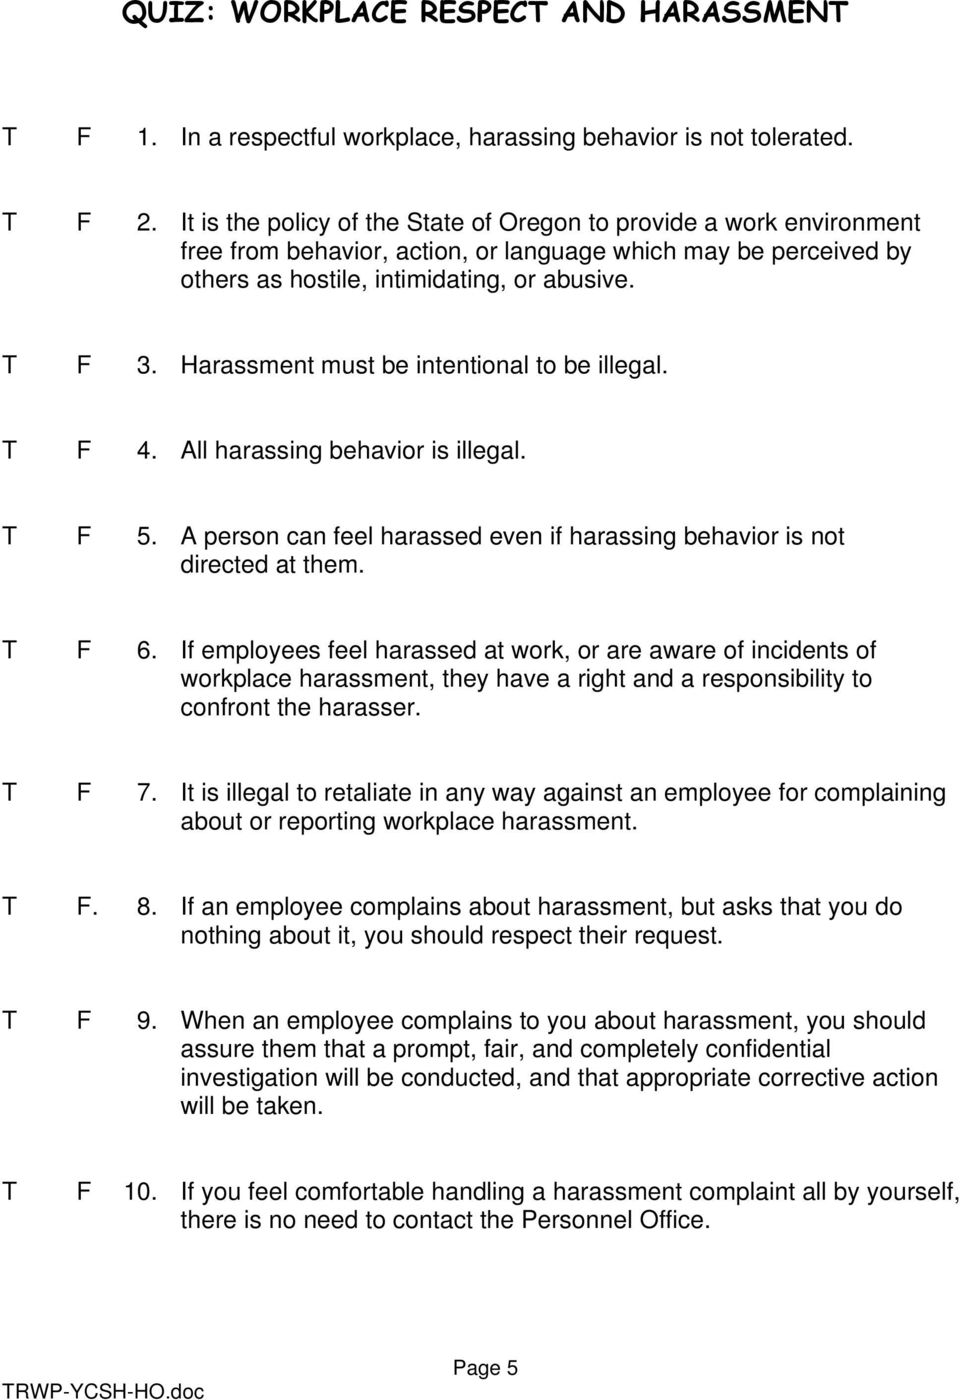 Harassment must be intentional to be illegal. T F 4. All harassing behavior is illegal. T F 5. A person can feel harassed even if harassing behavior is not directed at them. T F 6.